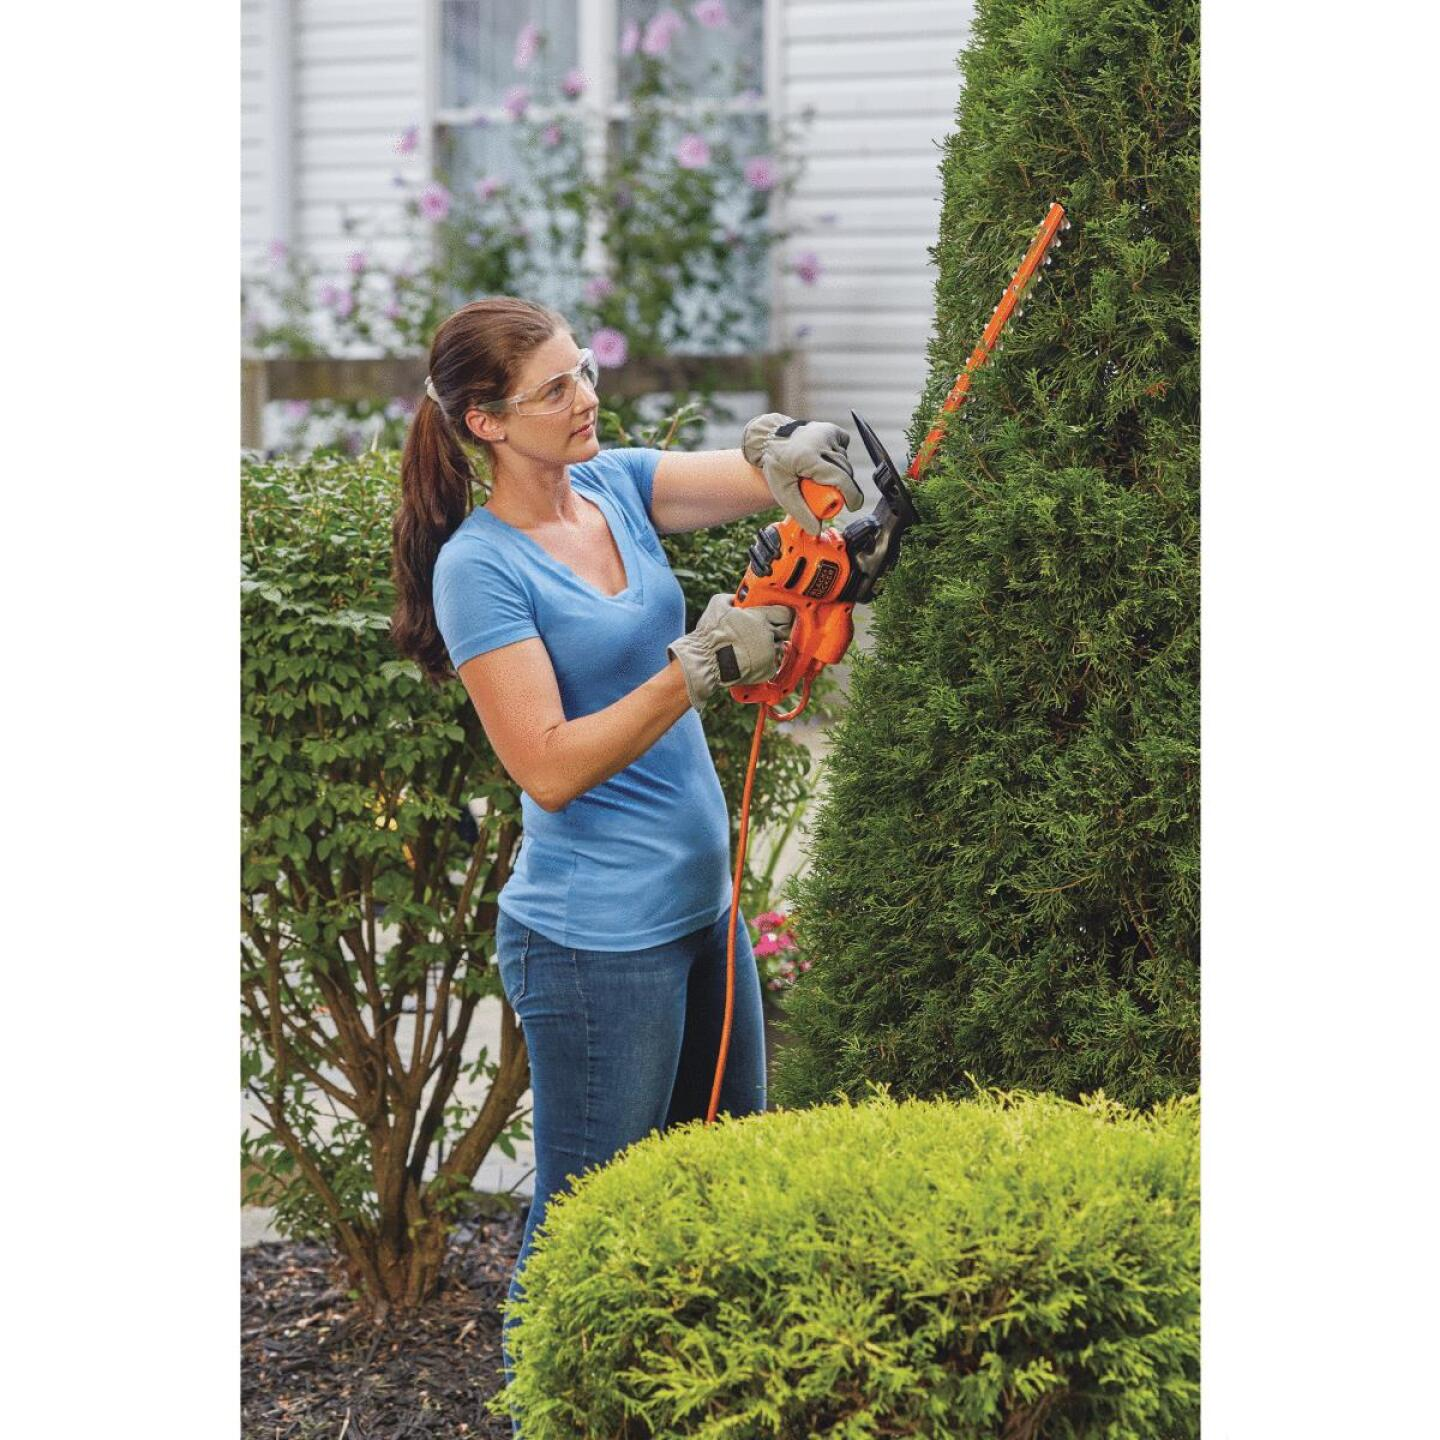 Black & Decker 16 In. 3-Amp Corded Electric Hedge Trimmer Image 2